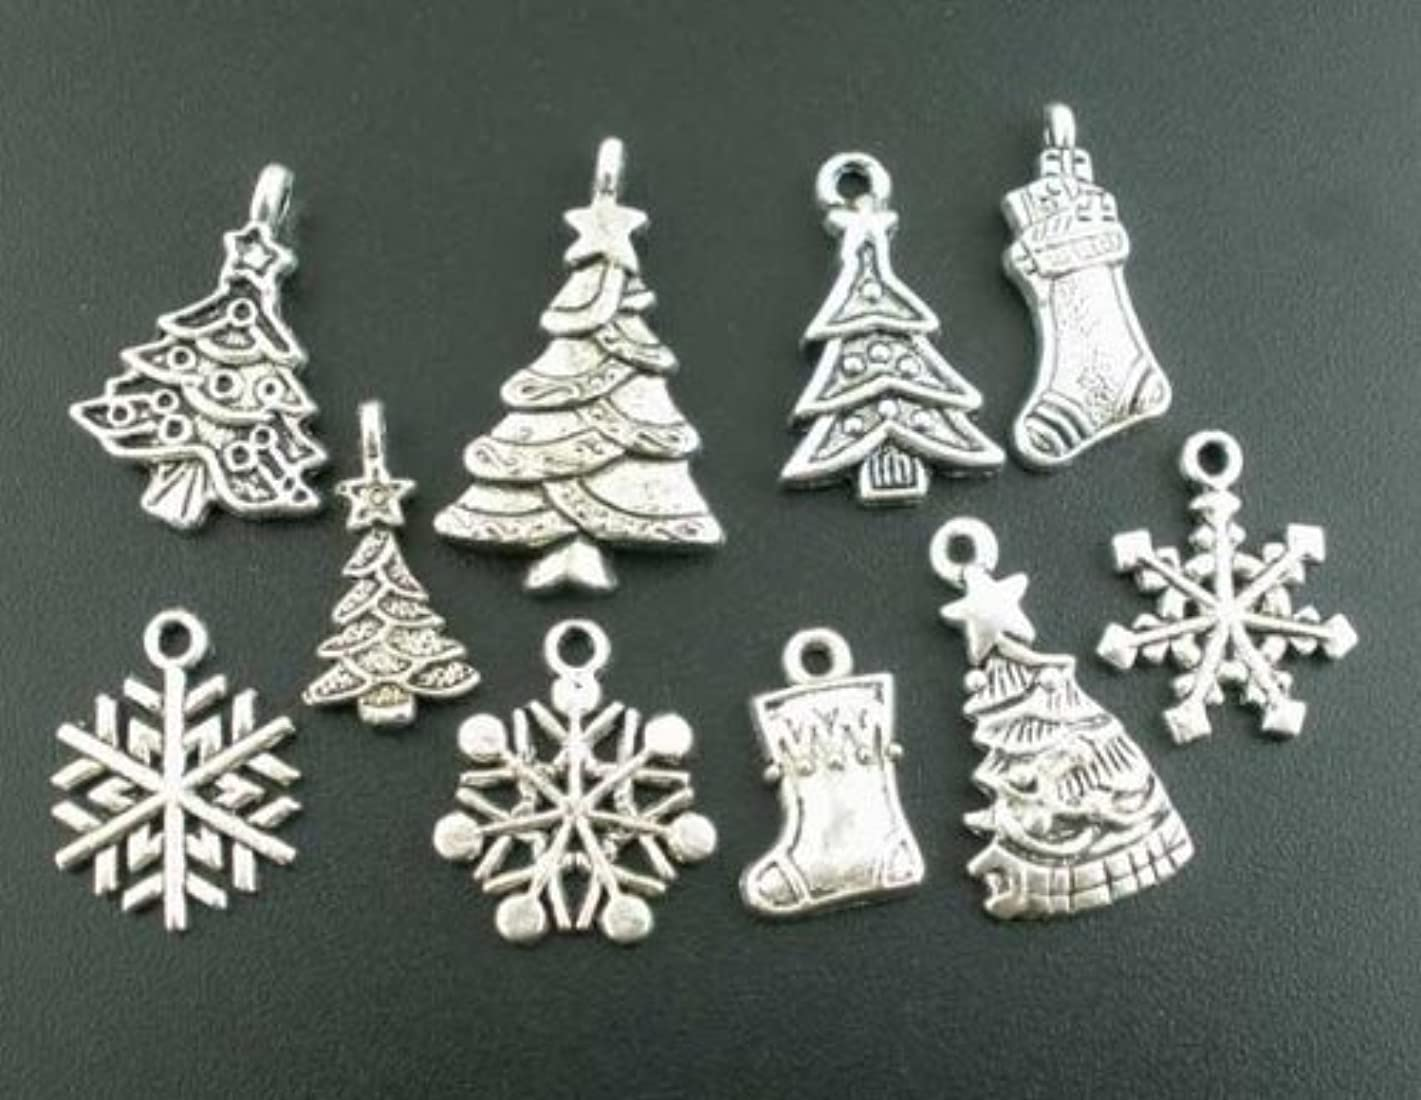 PEPPERLONELY Brand 40PC Mixed Antiqued Silver Christmas Charms Pendants